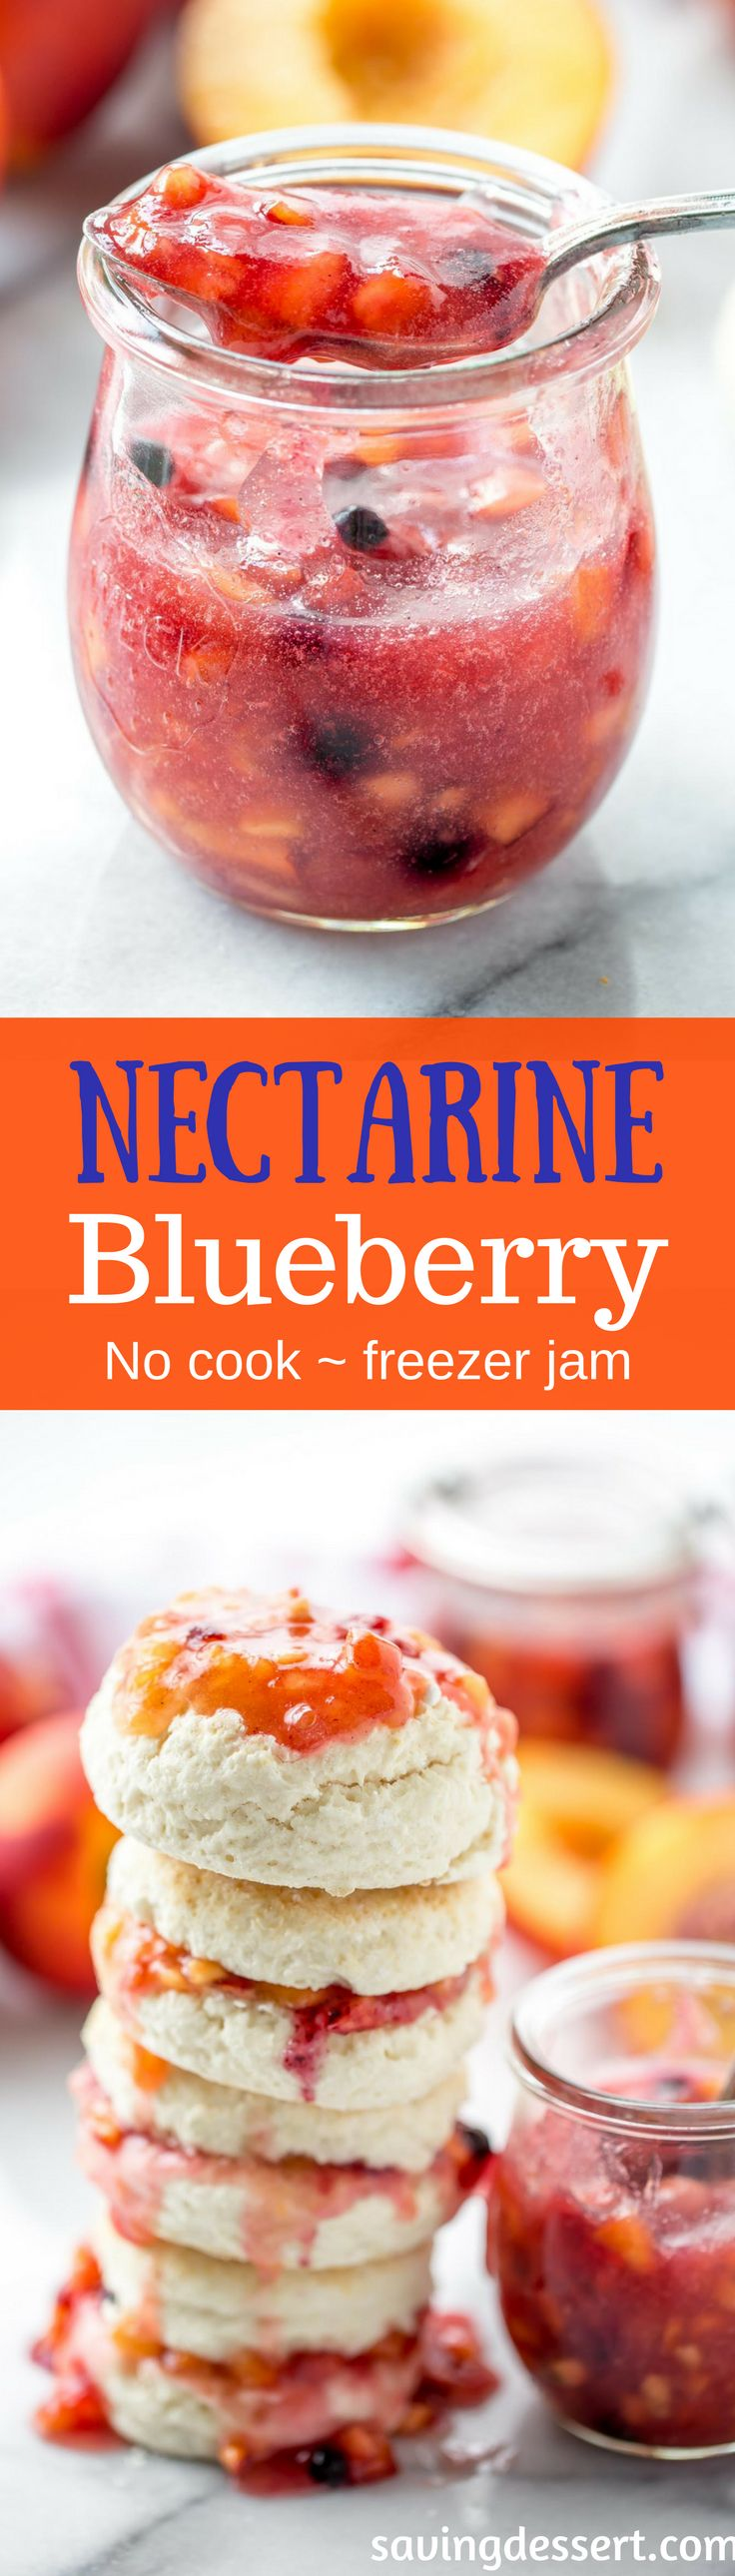 Easy Nectarine Blueberry Freezer Jam ~ get out the easy button because this delicious no-cook jam is as simple as it gets with unpeeled, diced nectarines and blueberries.  www.savingdessert.com